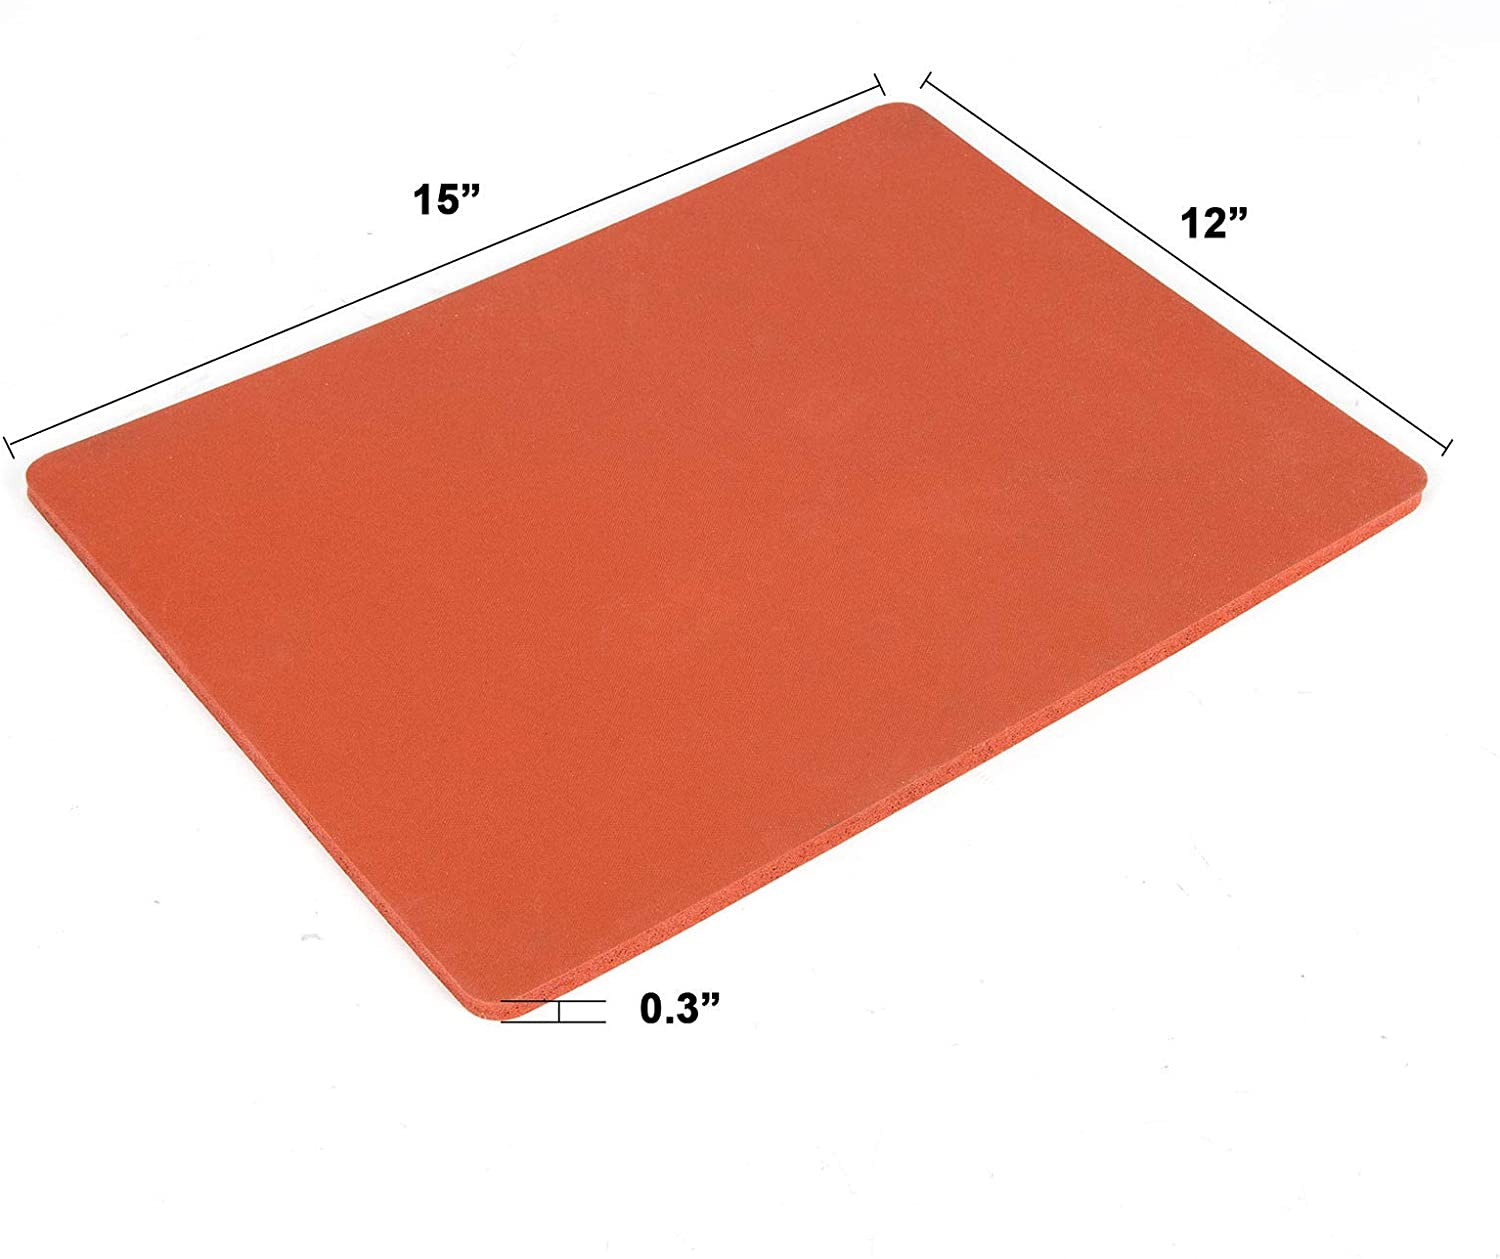 """Tech-L 15/"""" /×15/"""" Silicone Pad Compatible with Cricut Easy Press Heat Press Mat Compatible with Cricut Easy Press Flat Heat Press Replacement Red"""